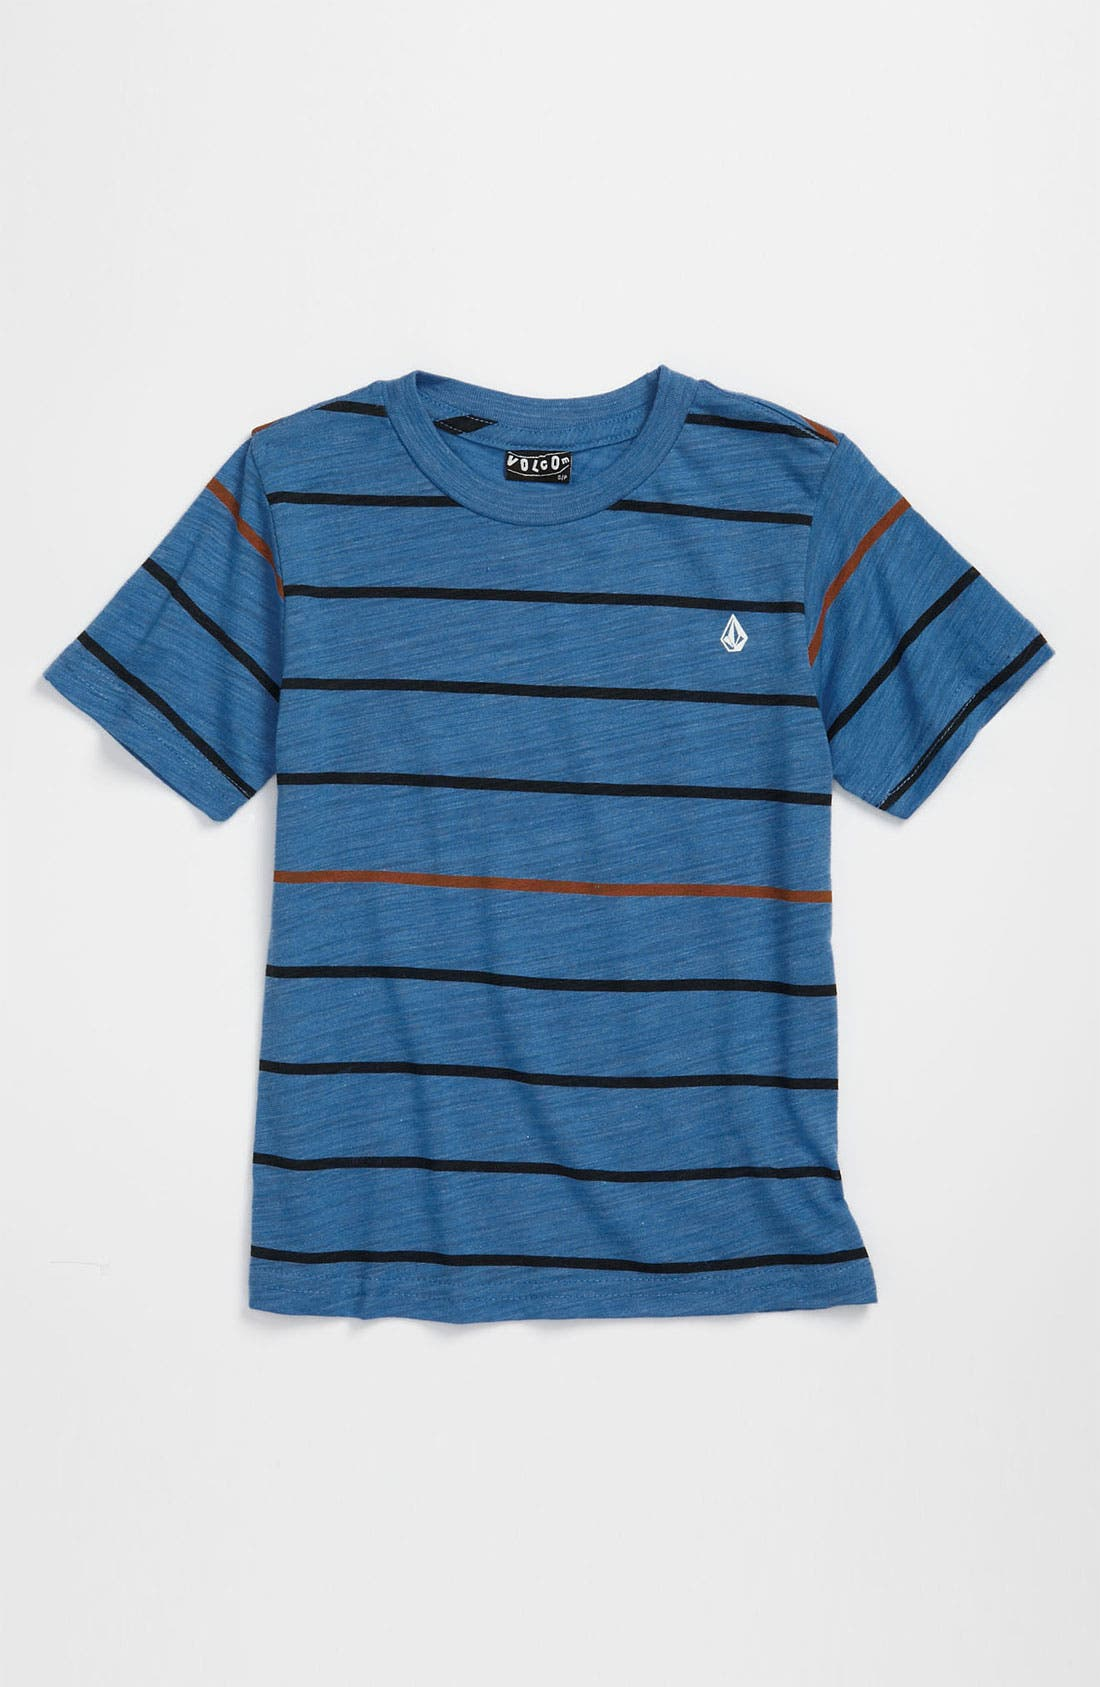 Main Image - Volcom 'Knock Stripe' T-Shirt (Little Boys)